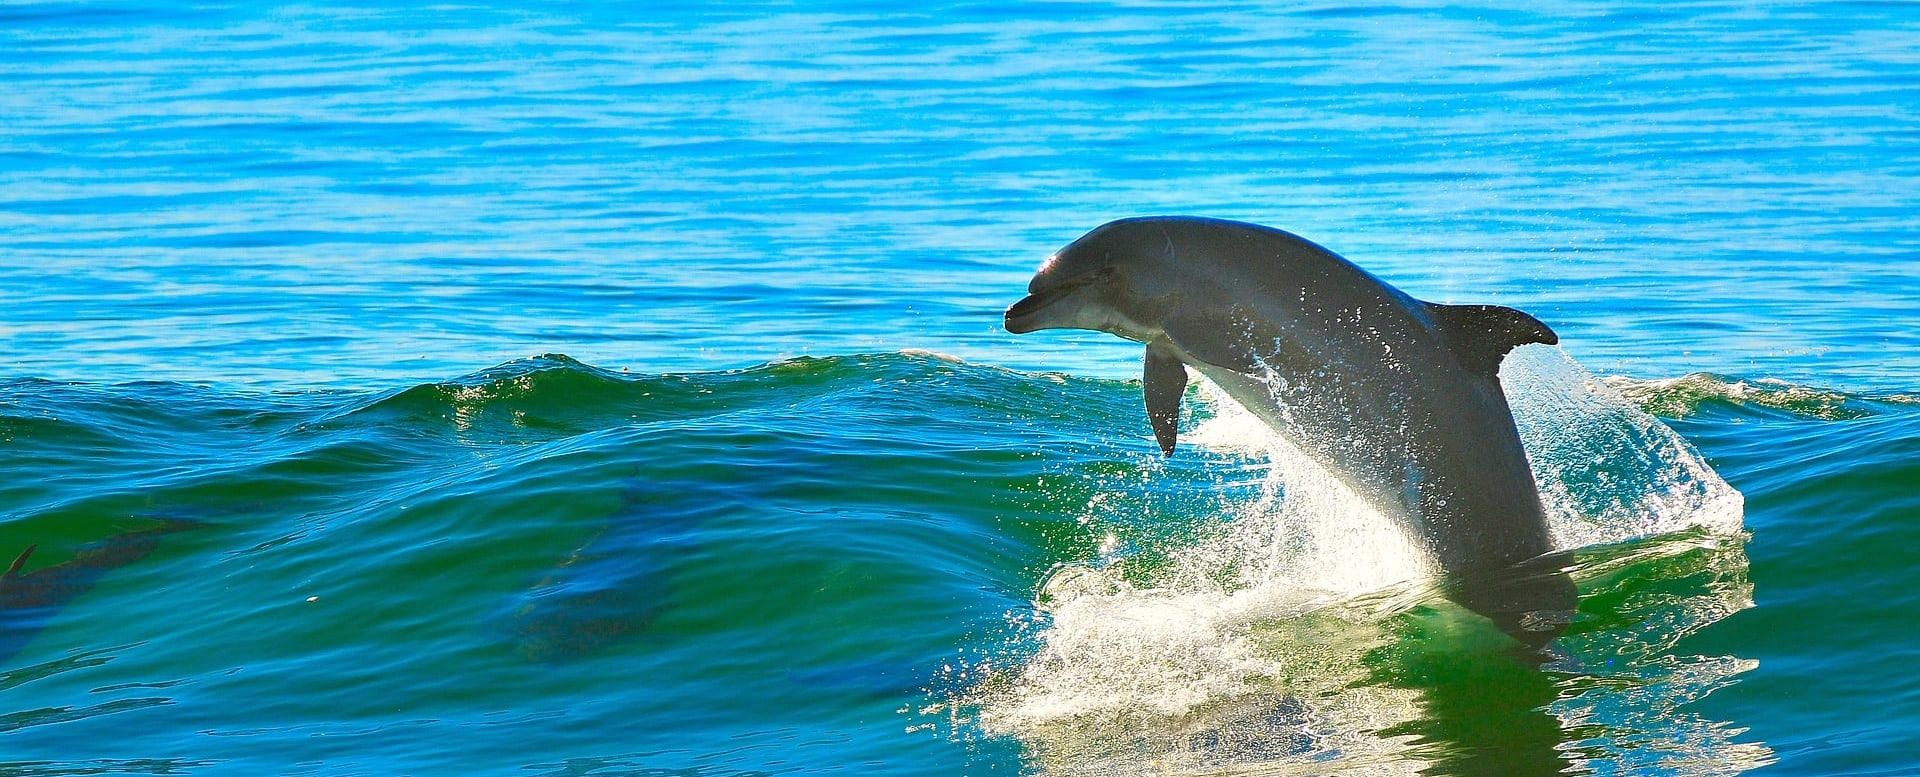 DOLPHINS HANDLE A HURRICANE OR TROPICAL STORM Quest